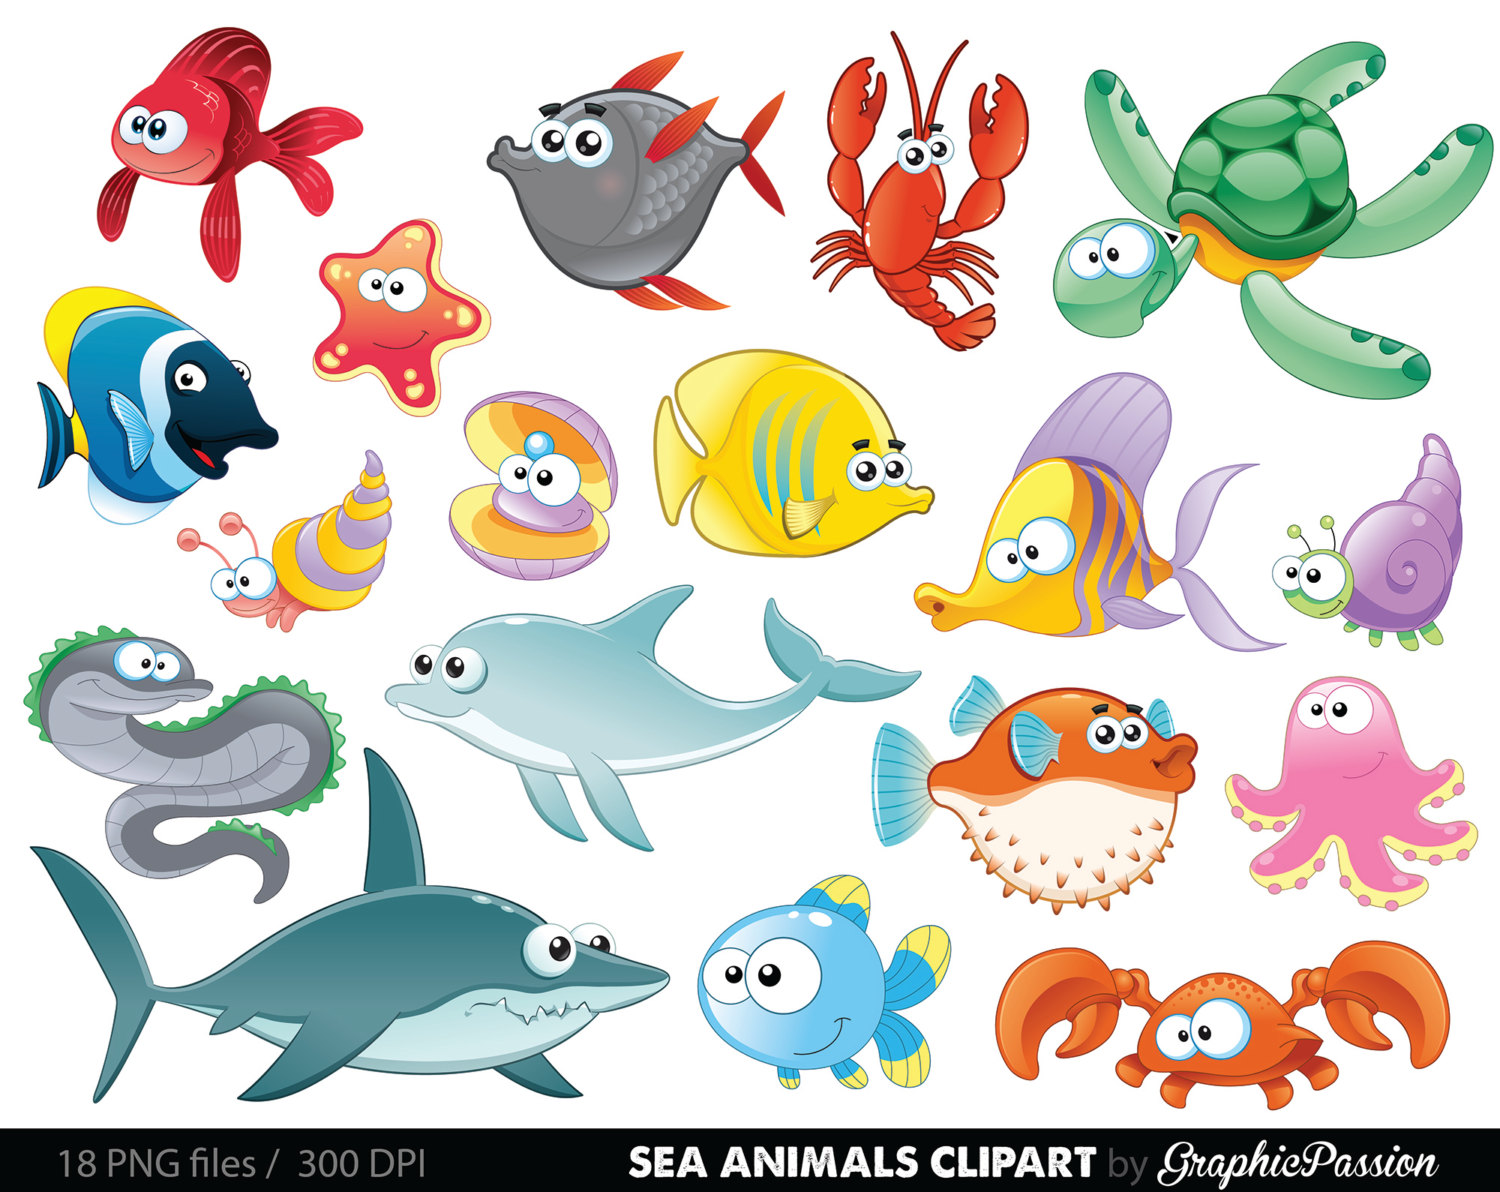 Sea Animal Clipart Under the Sea Baby Sea Creatures Clip Art Animal Clipart Ocean clipart Sea creatures graphics Sea animals vector